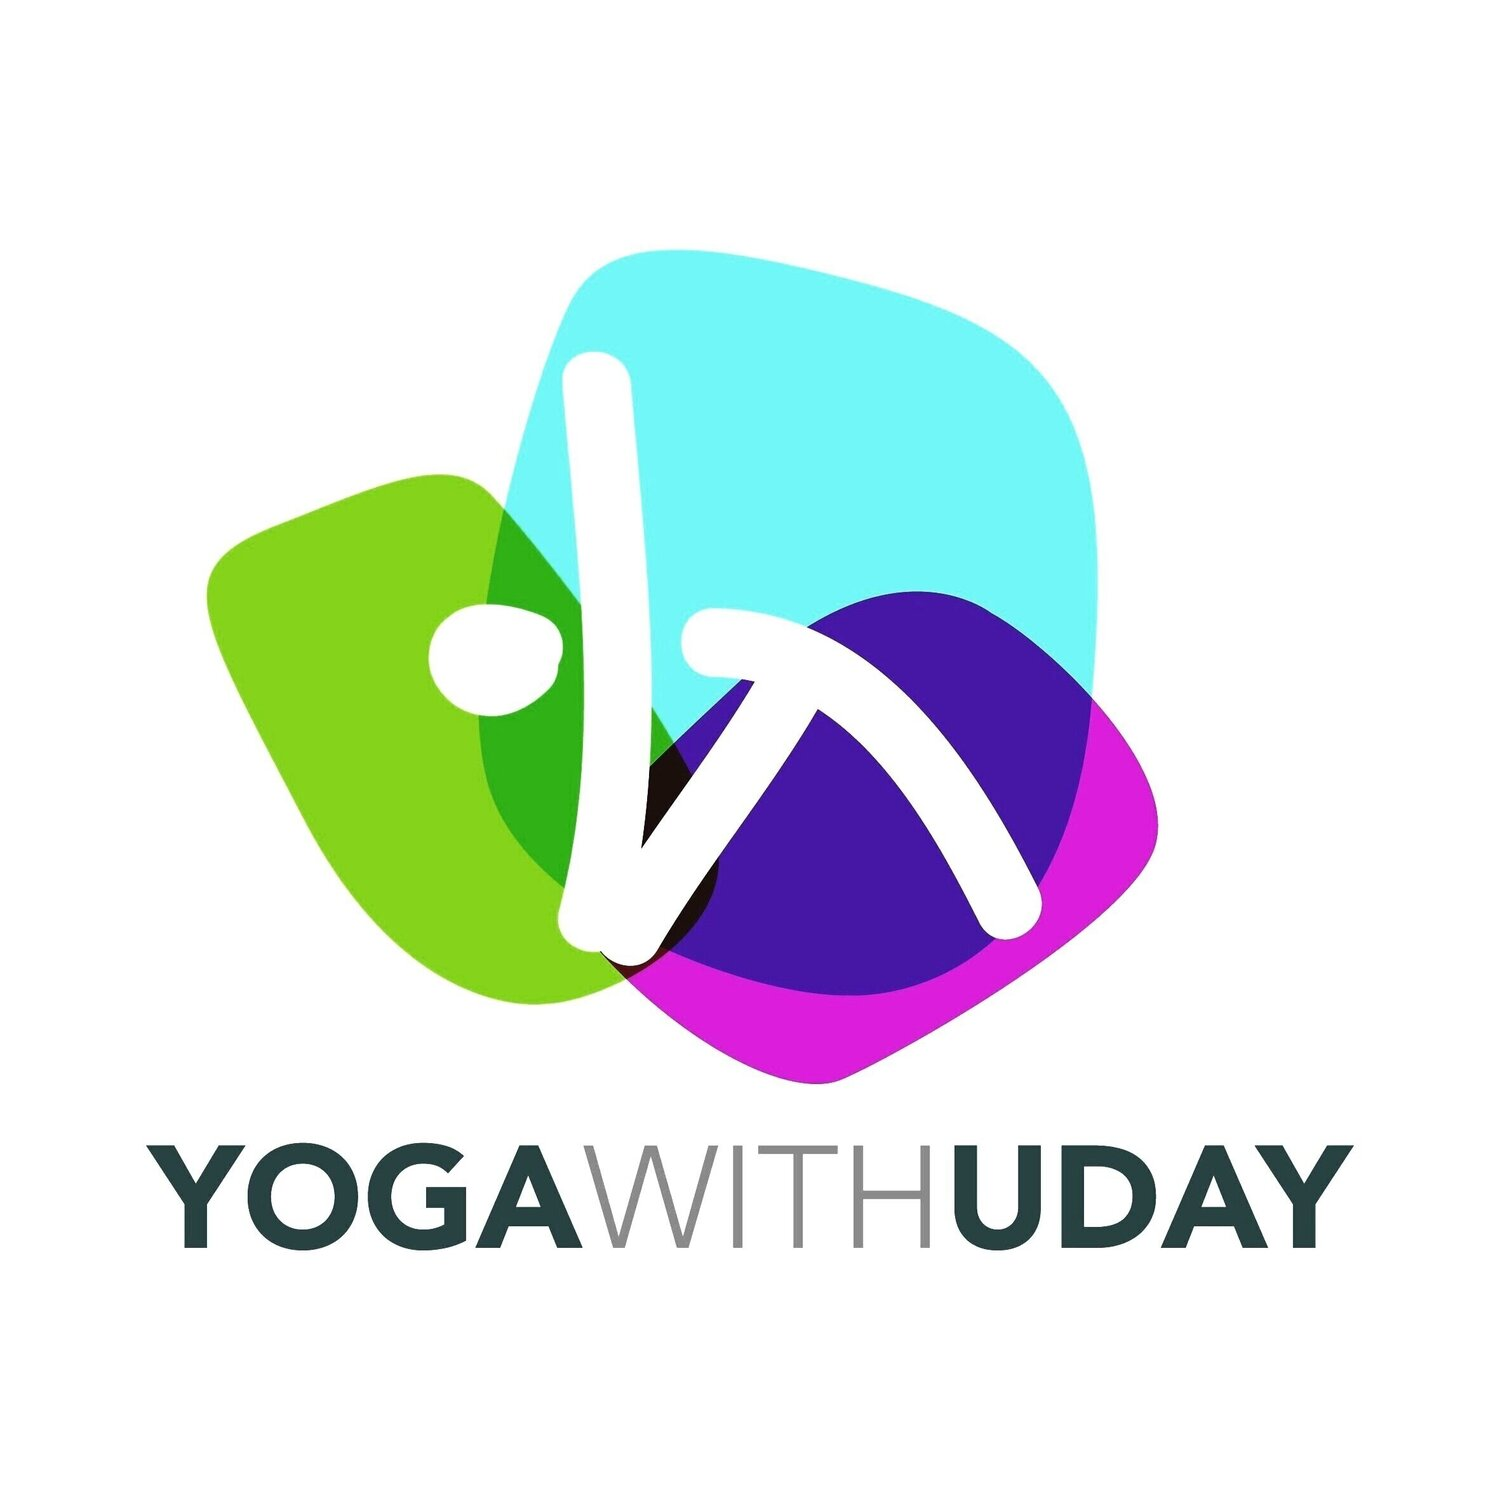 Yoga With Uday